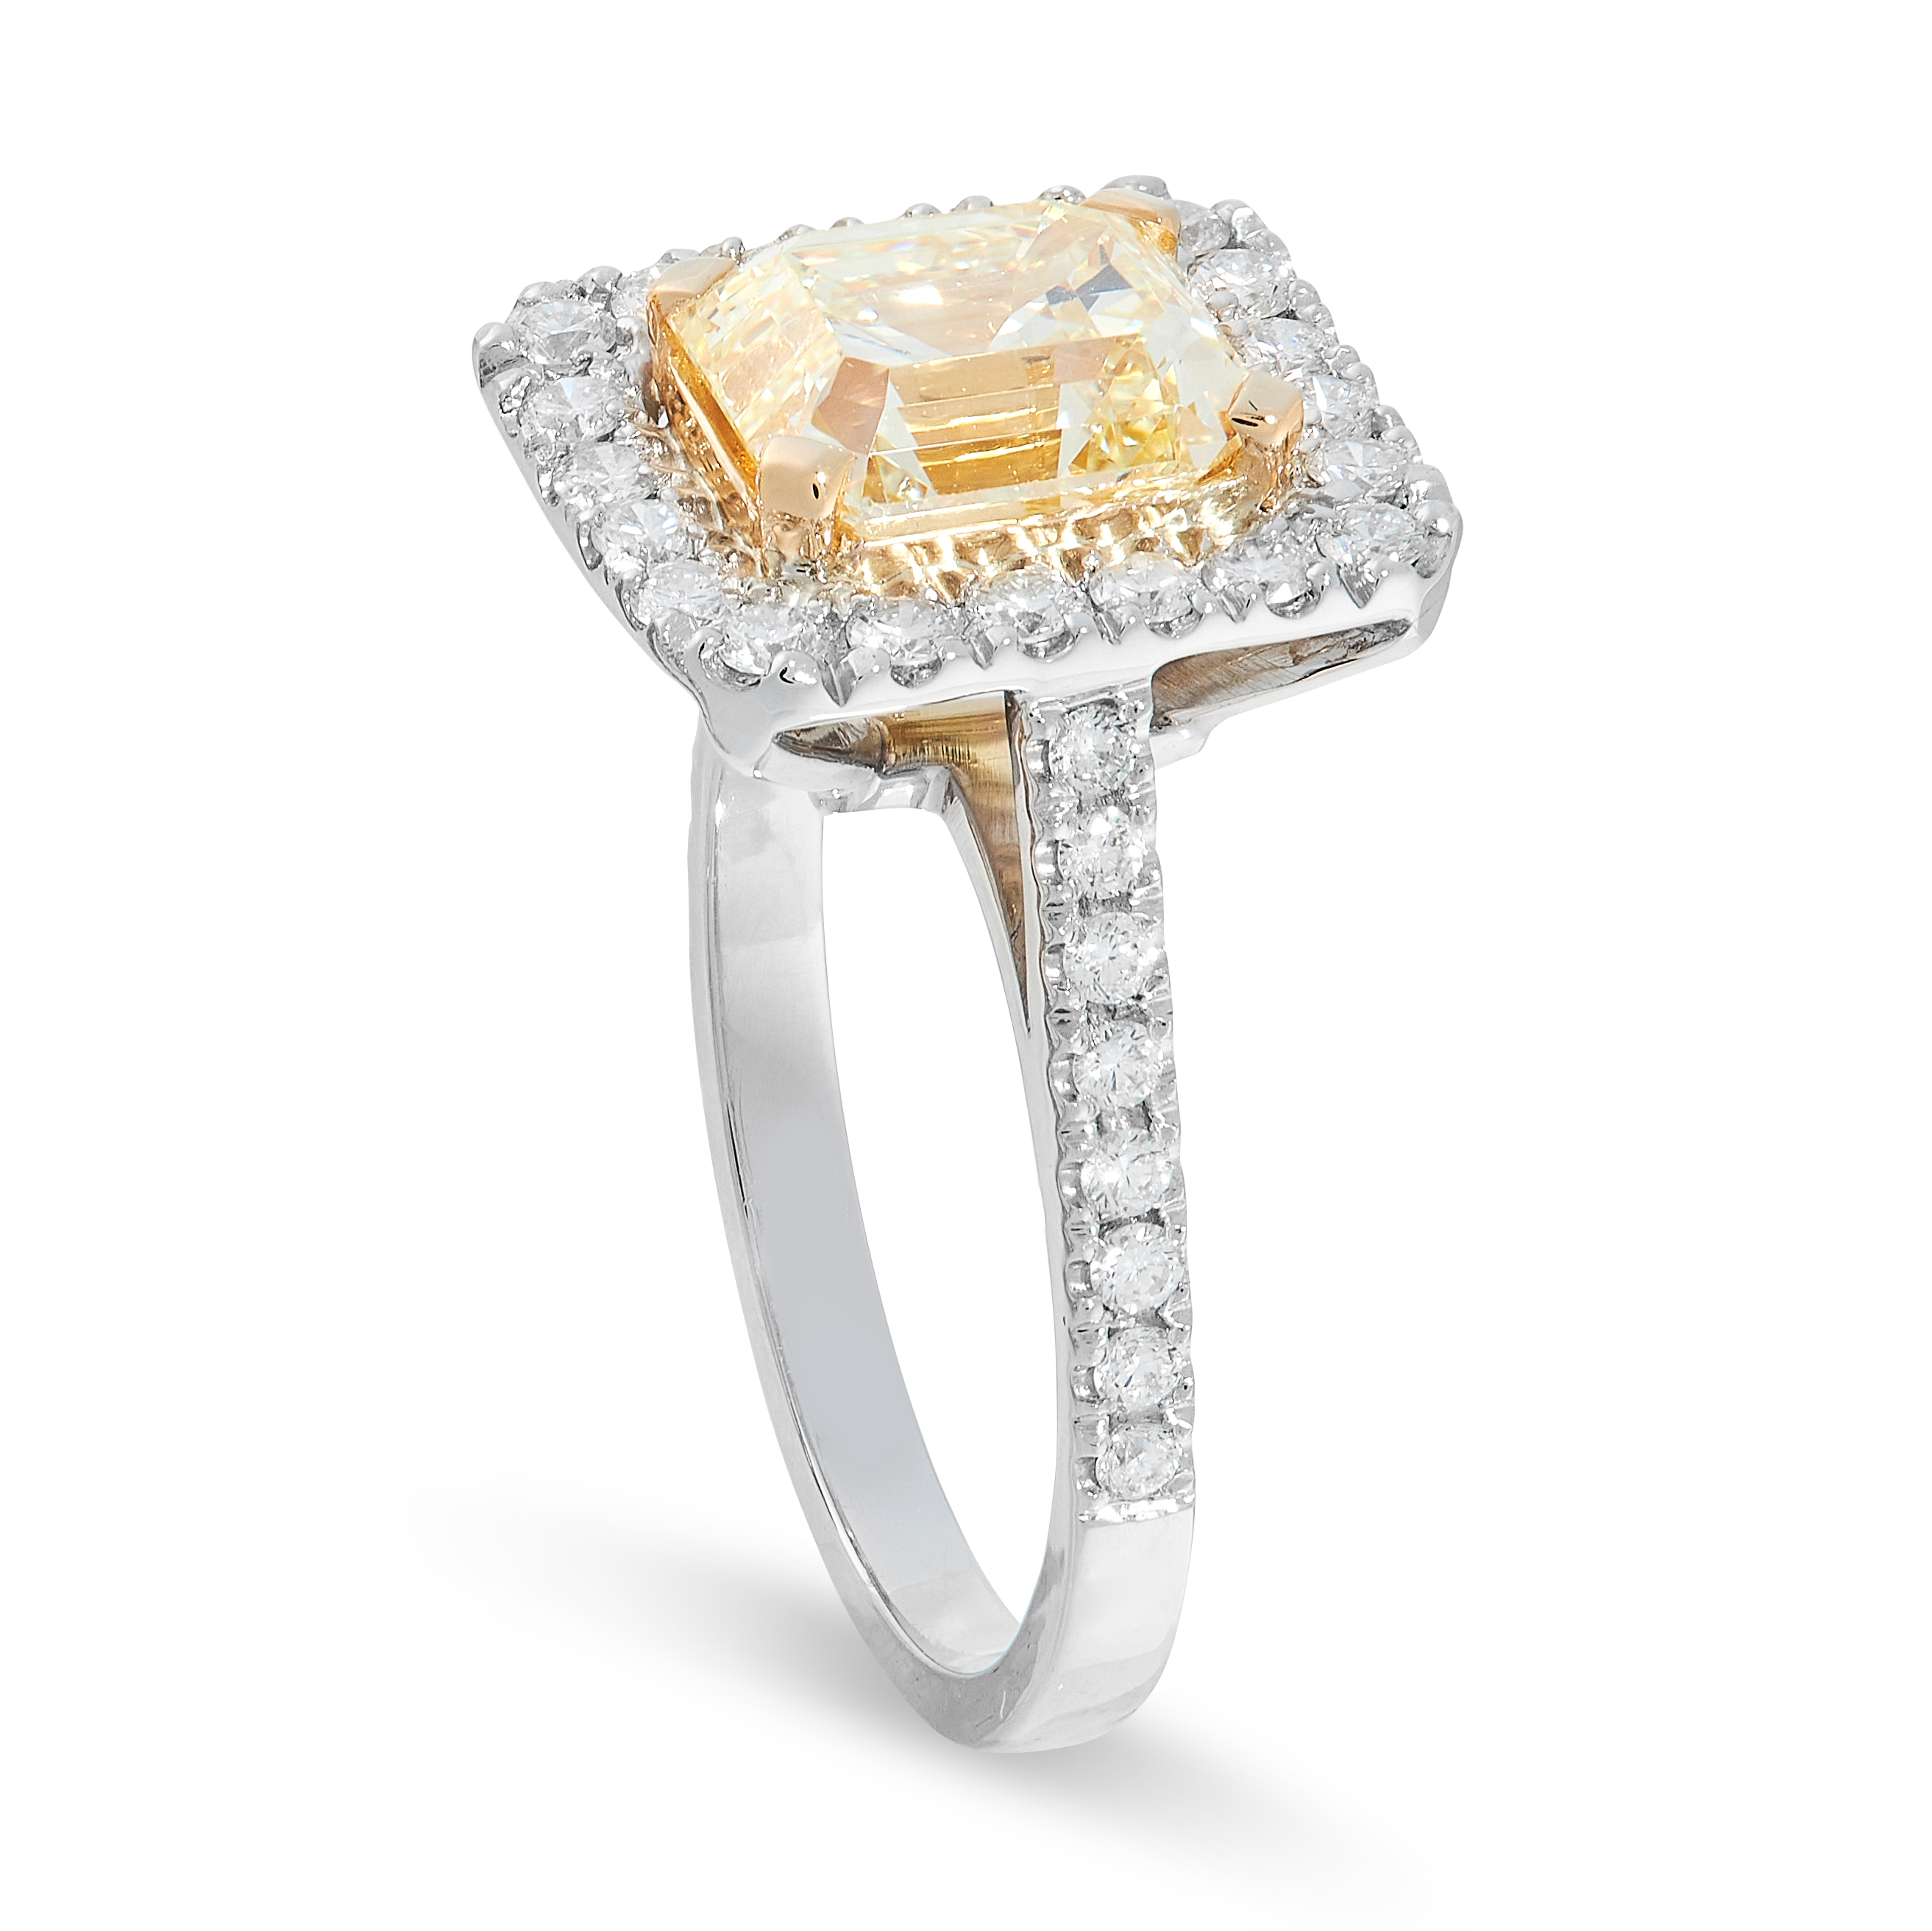 YELLOW DIAMOND AND DIAMOND RING claw set to the centre with an emerald cut yellow diamond of 3.05 - Image 2 of 2